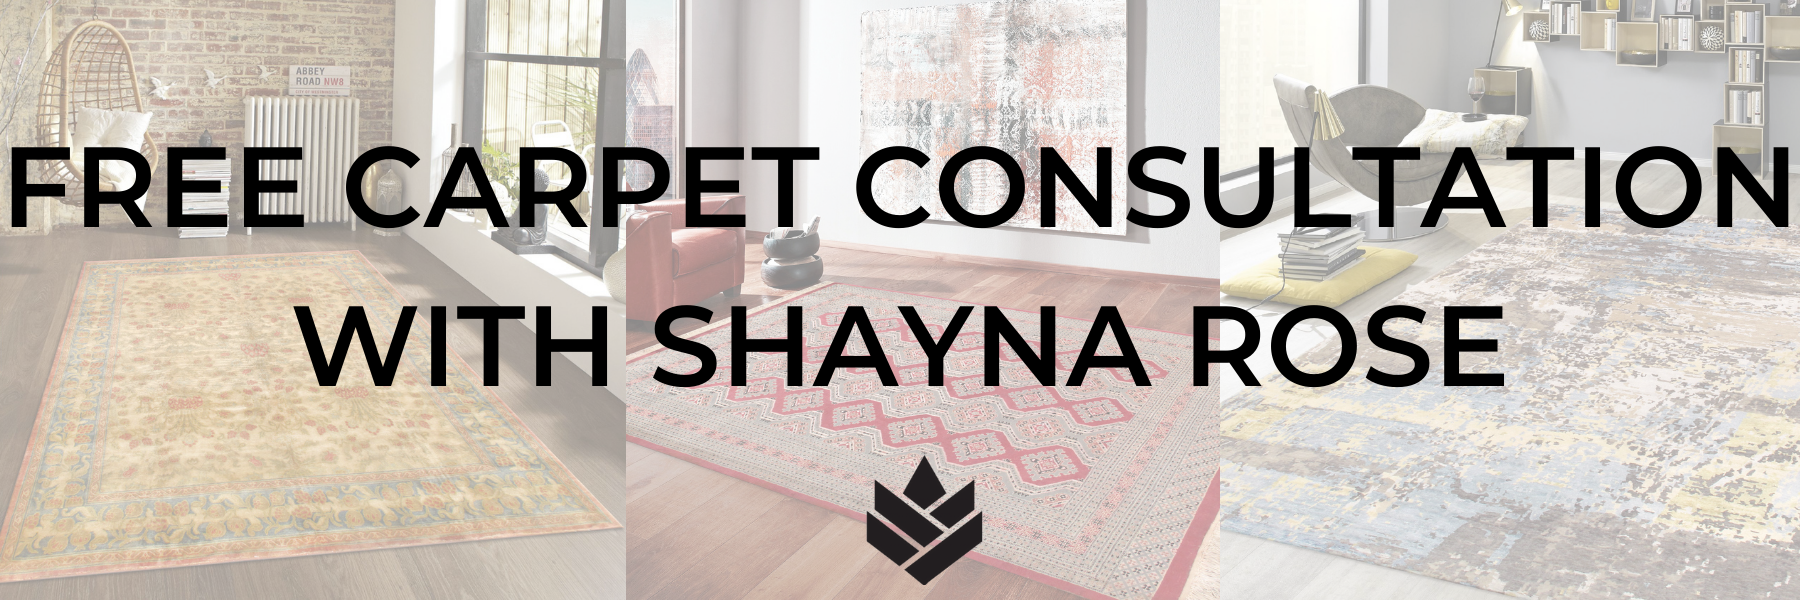 FREE Carpet Consultation with Shayna Rose